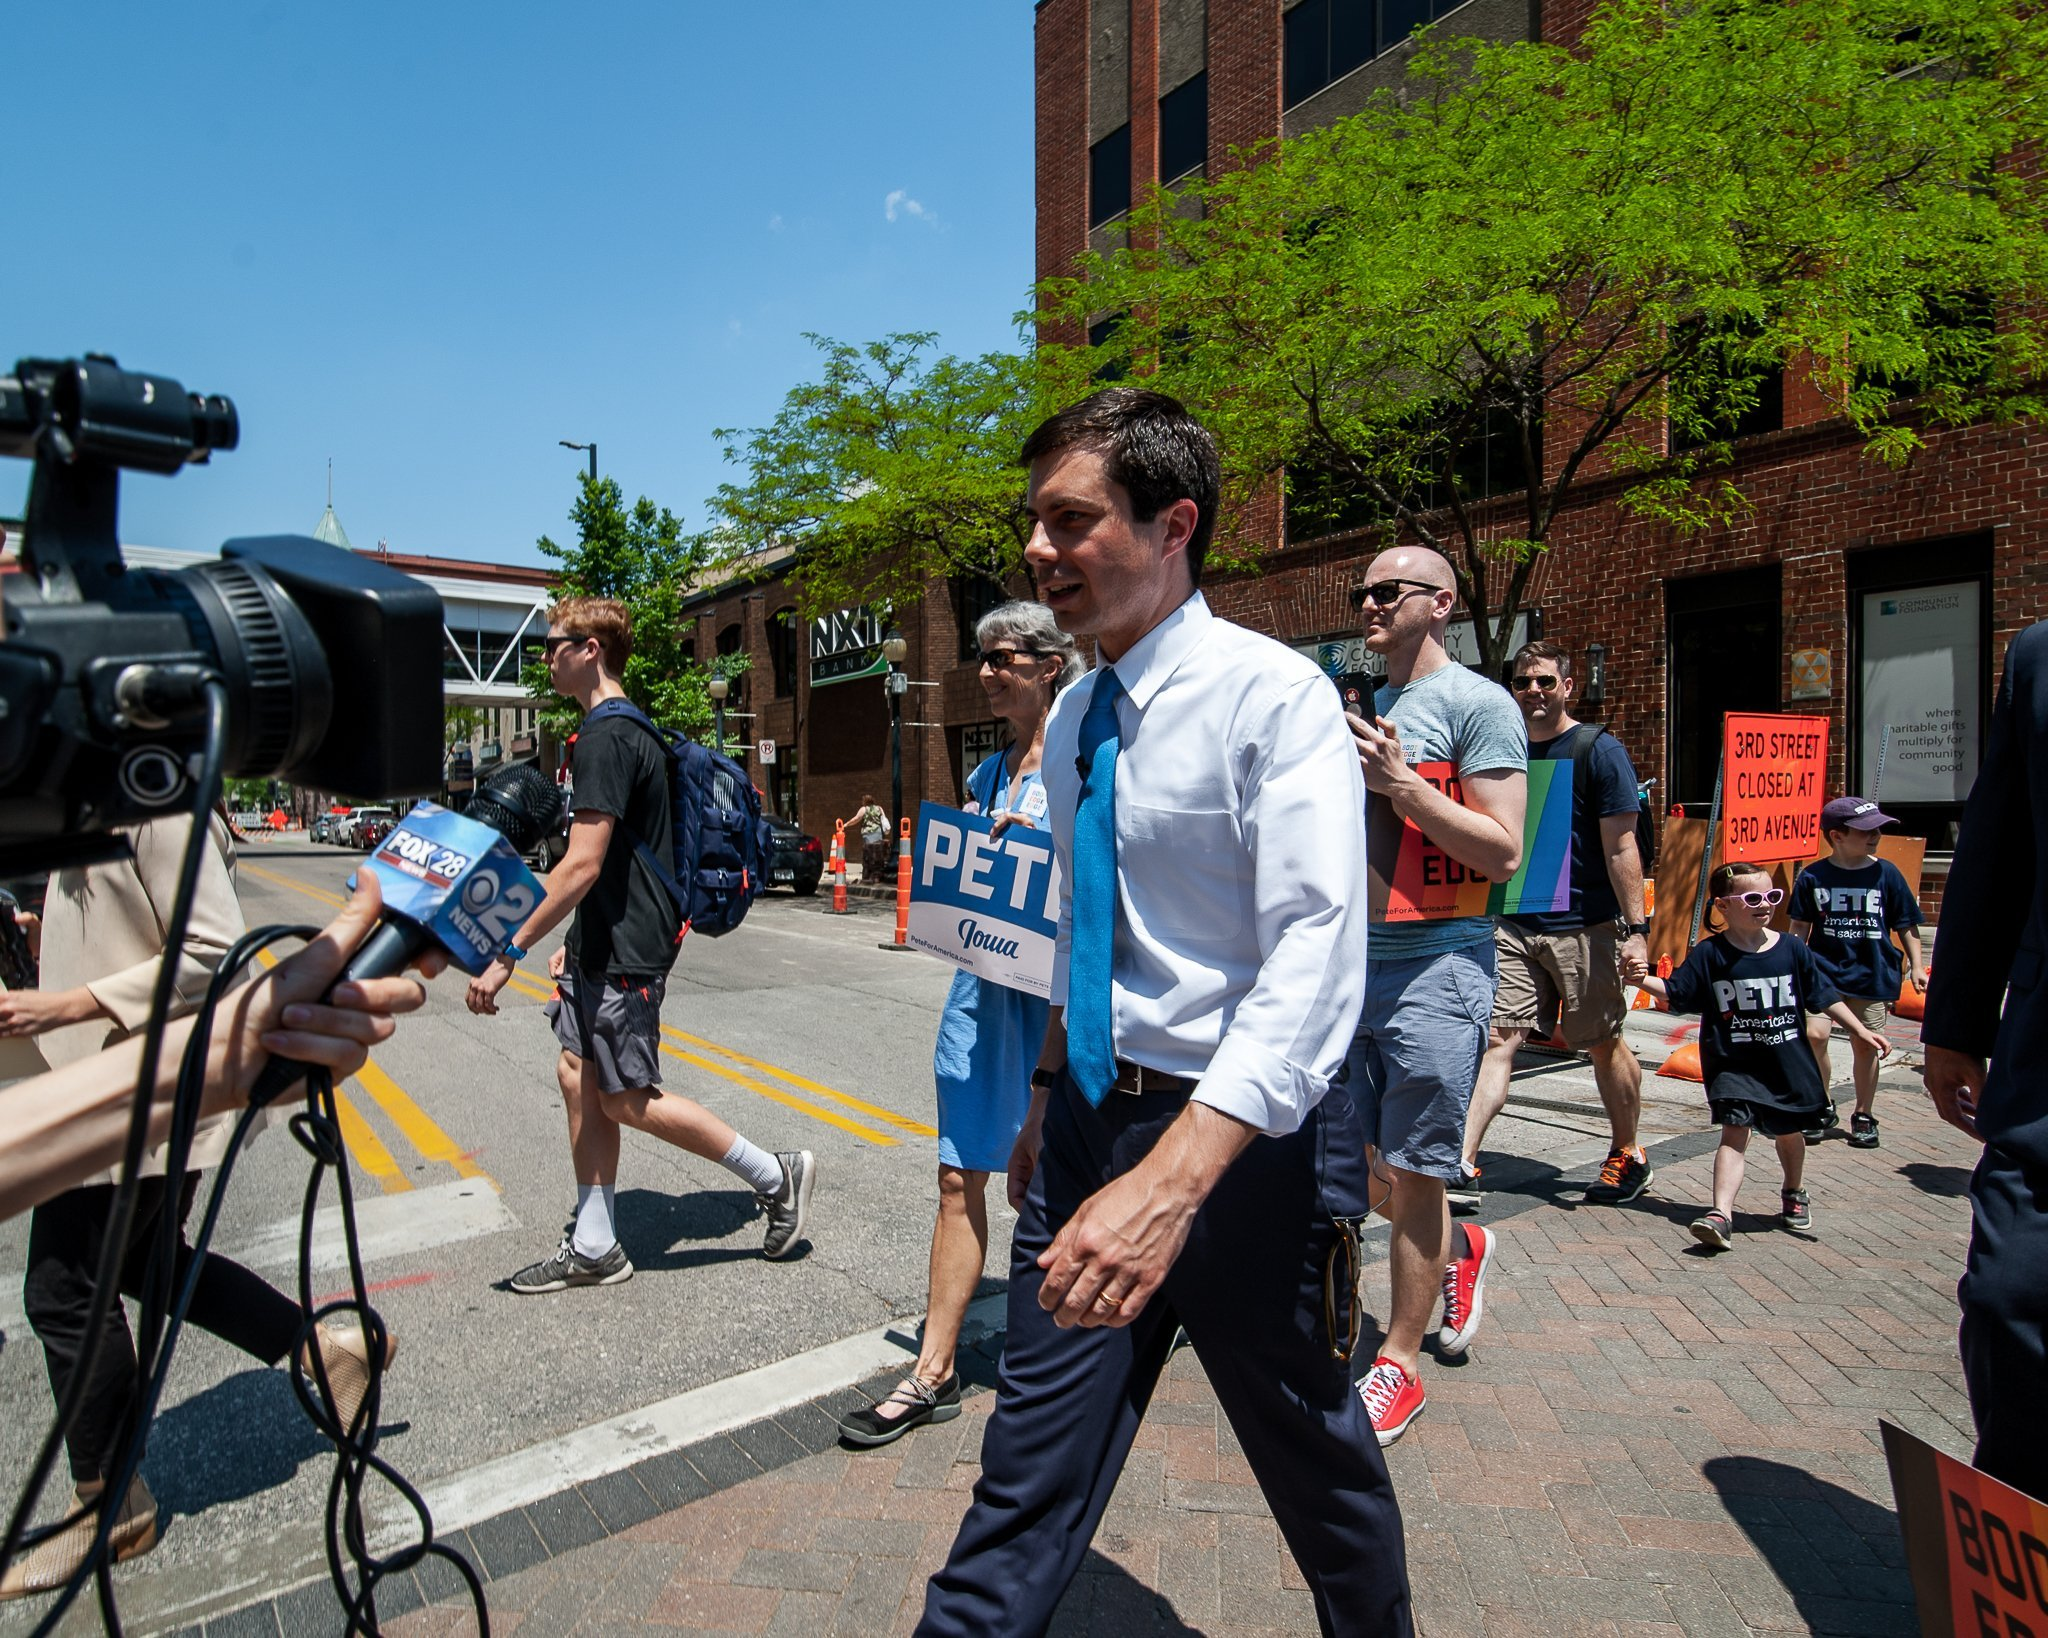 Pete Buttigieg supporters march from Green Square Park to the U.S. Cellular Center in downtown Cedar Rapids, Iowa